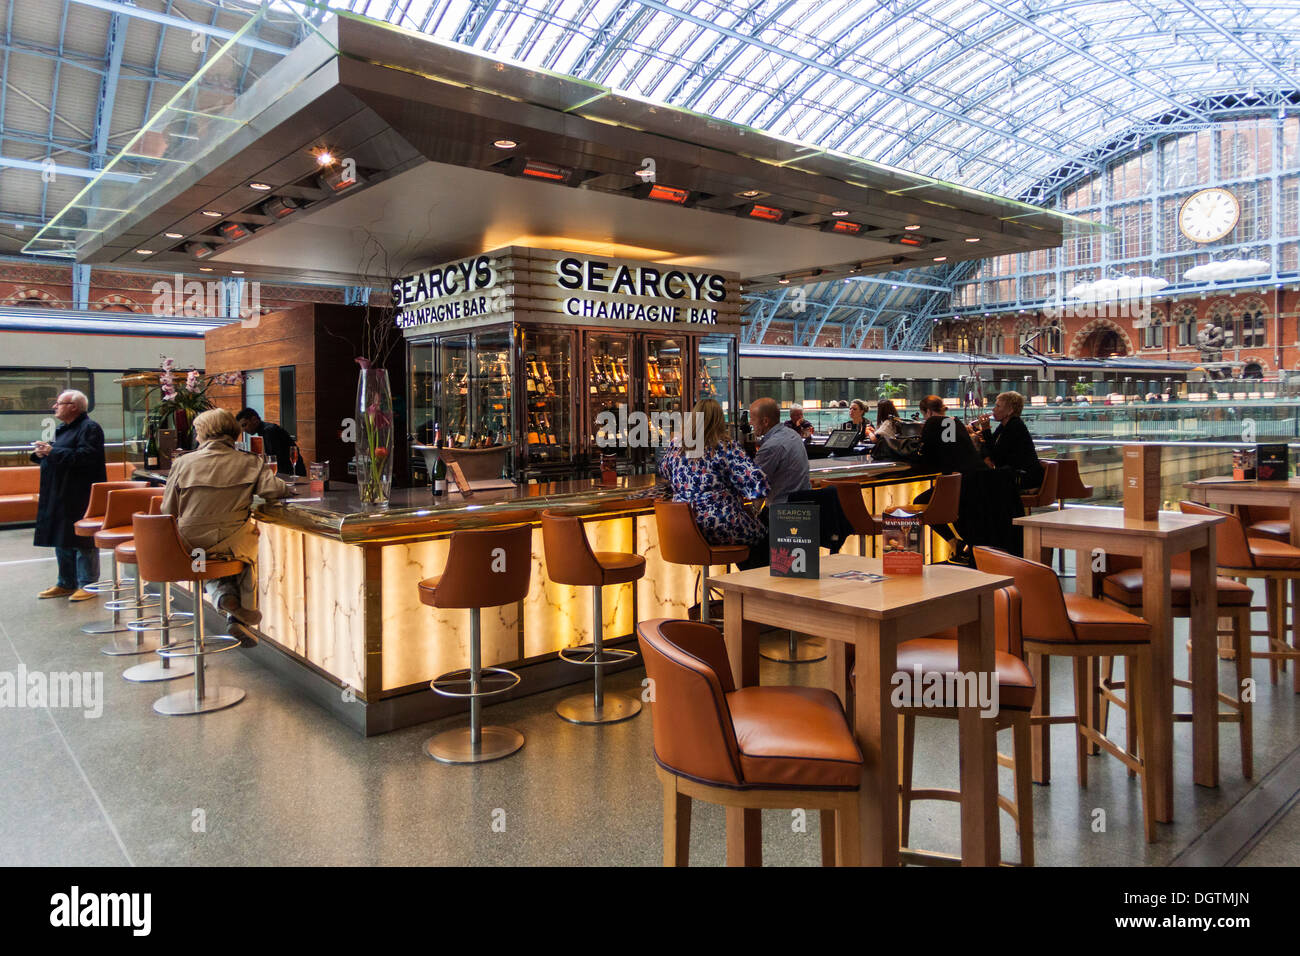 Searcy's Champagne Bar, St Pancras Station, London - Stock Image